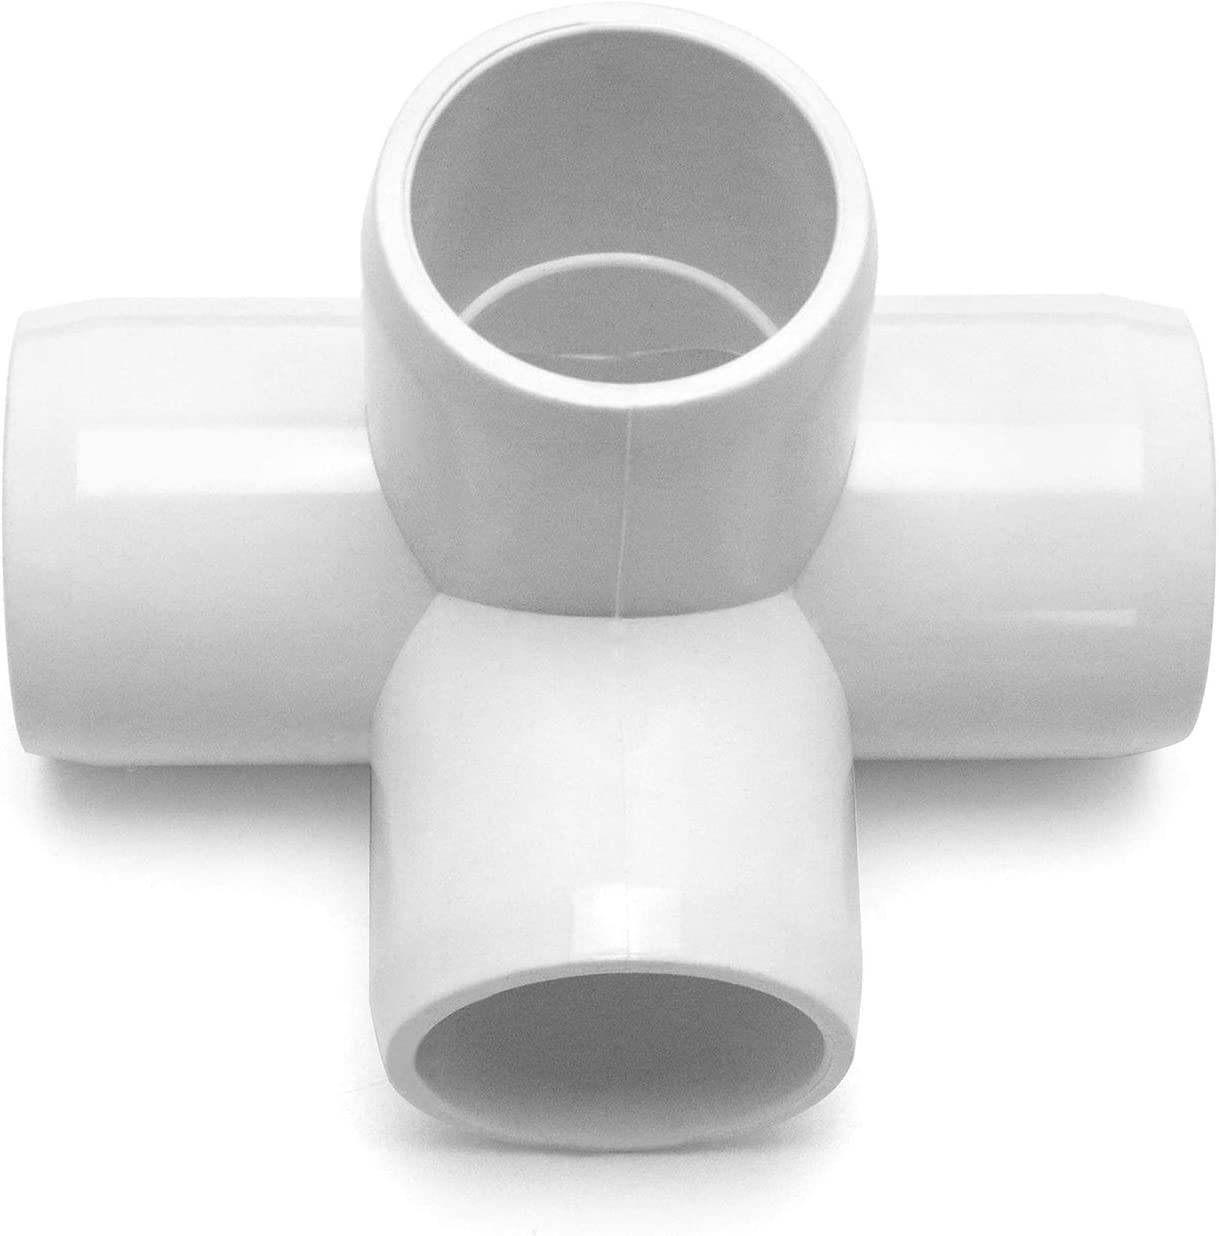 10Pack PVC Fitting Connector,Furniture Grade,for Building Furniture and PVC Structures,White QWORK 3 Way 3//4 Tee PVC Fitting Elbow